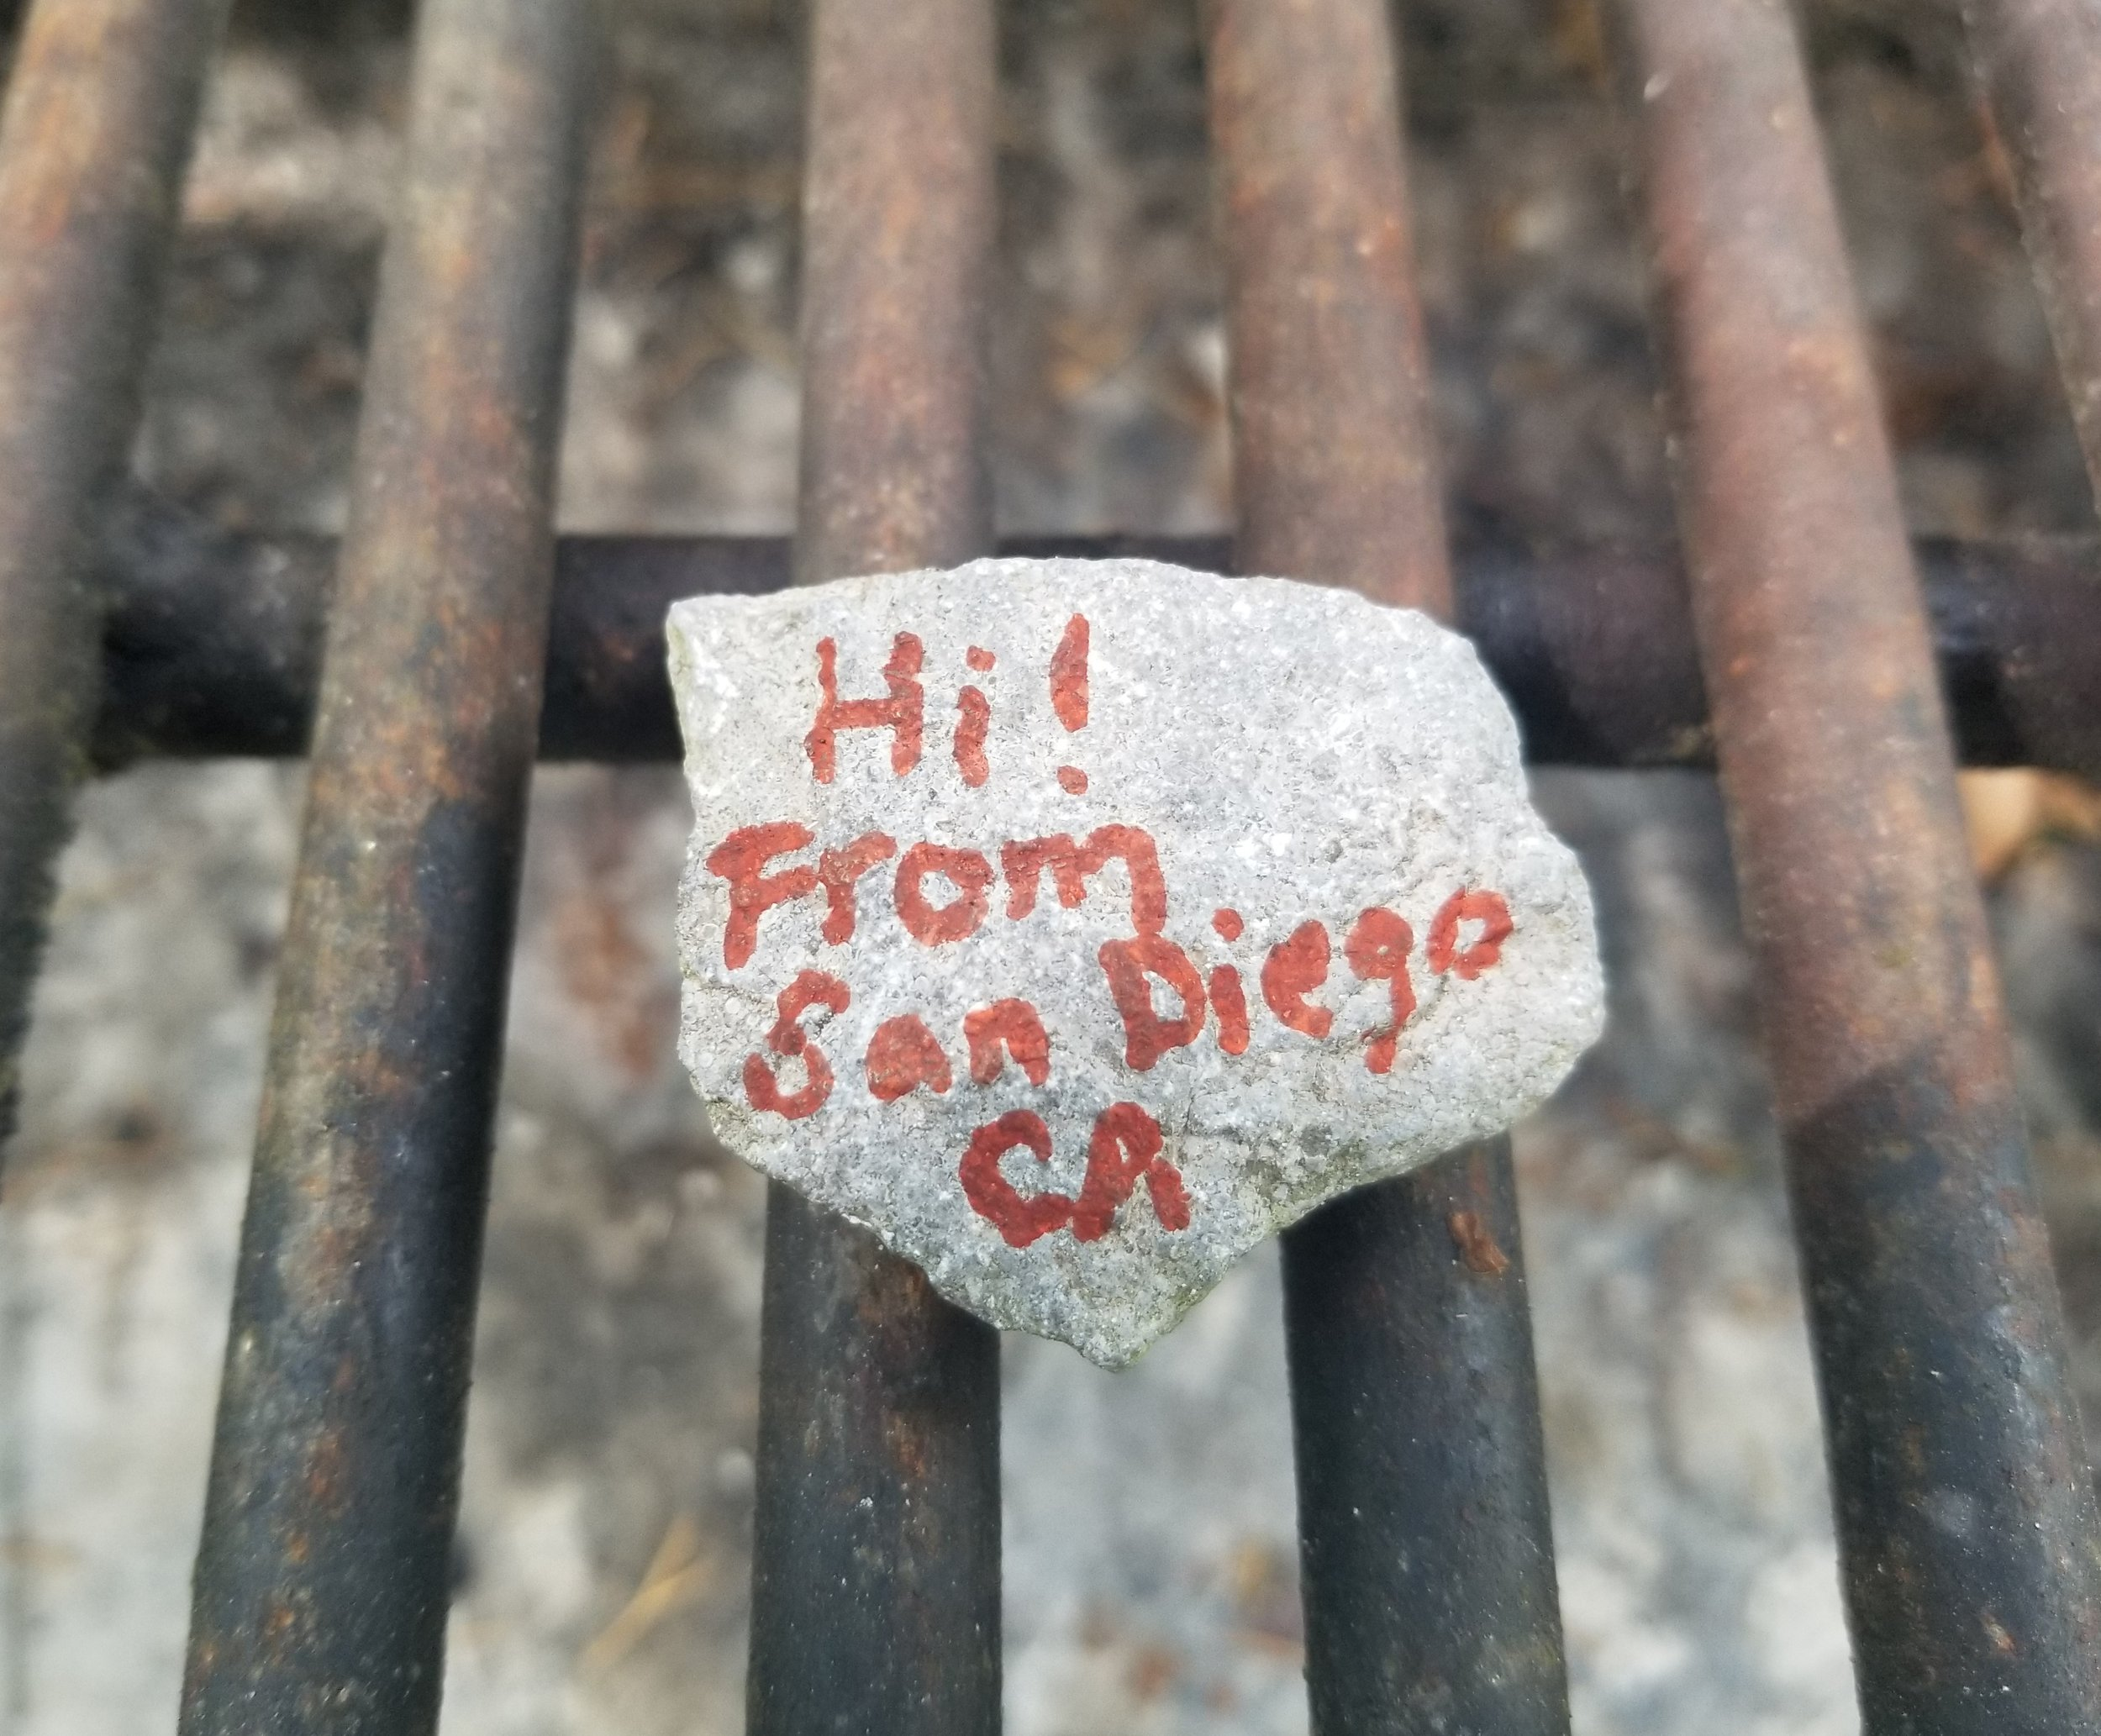 We continued the tradition and left a rock for the next guest